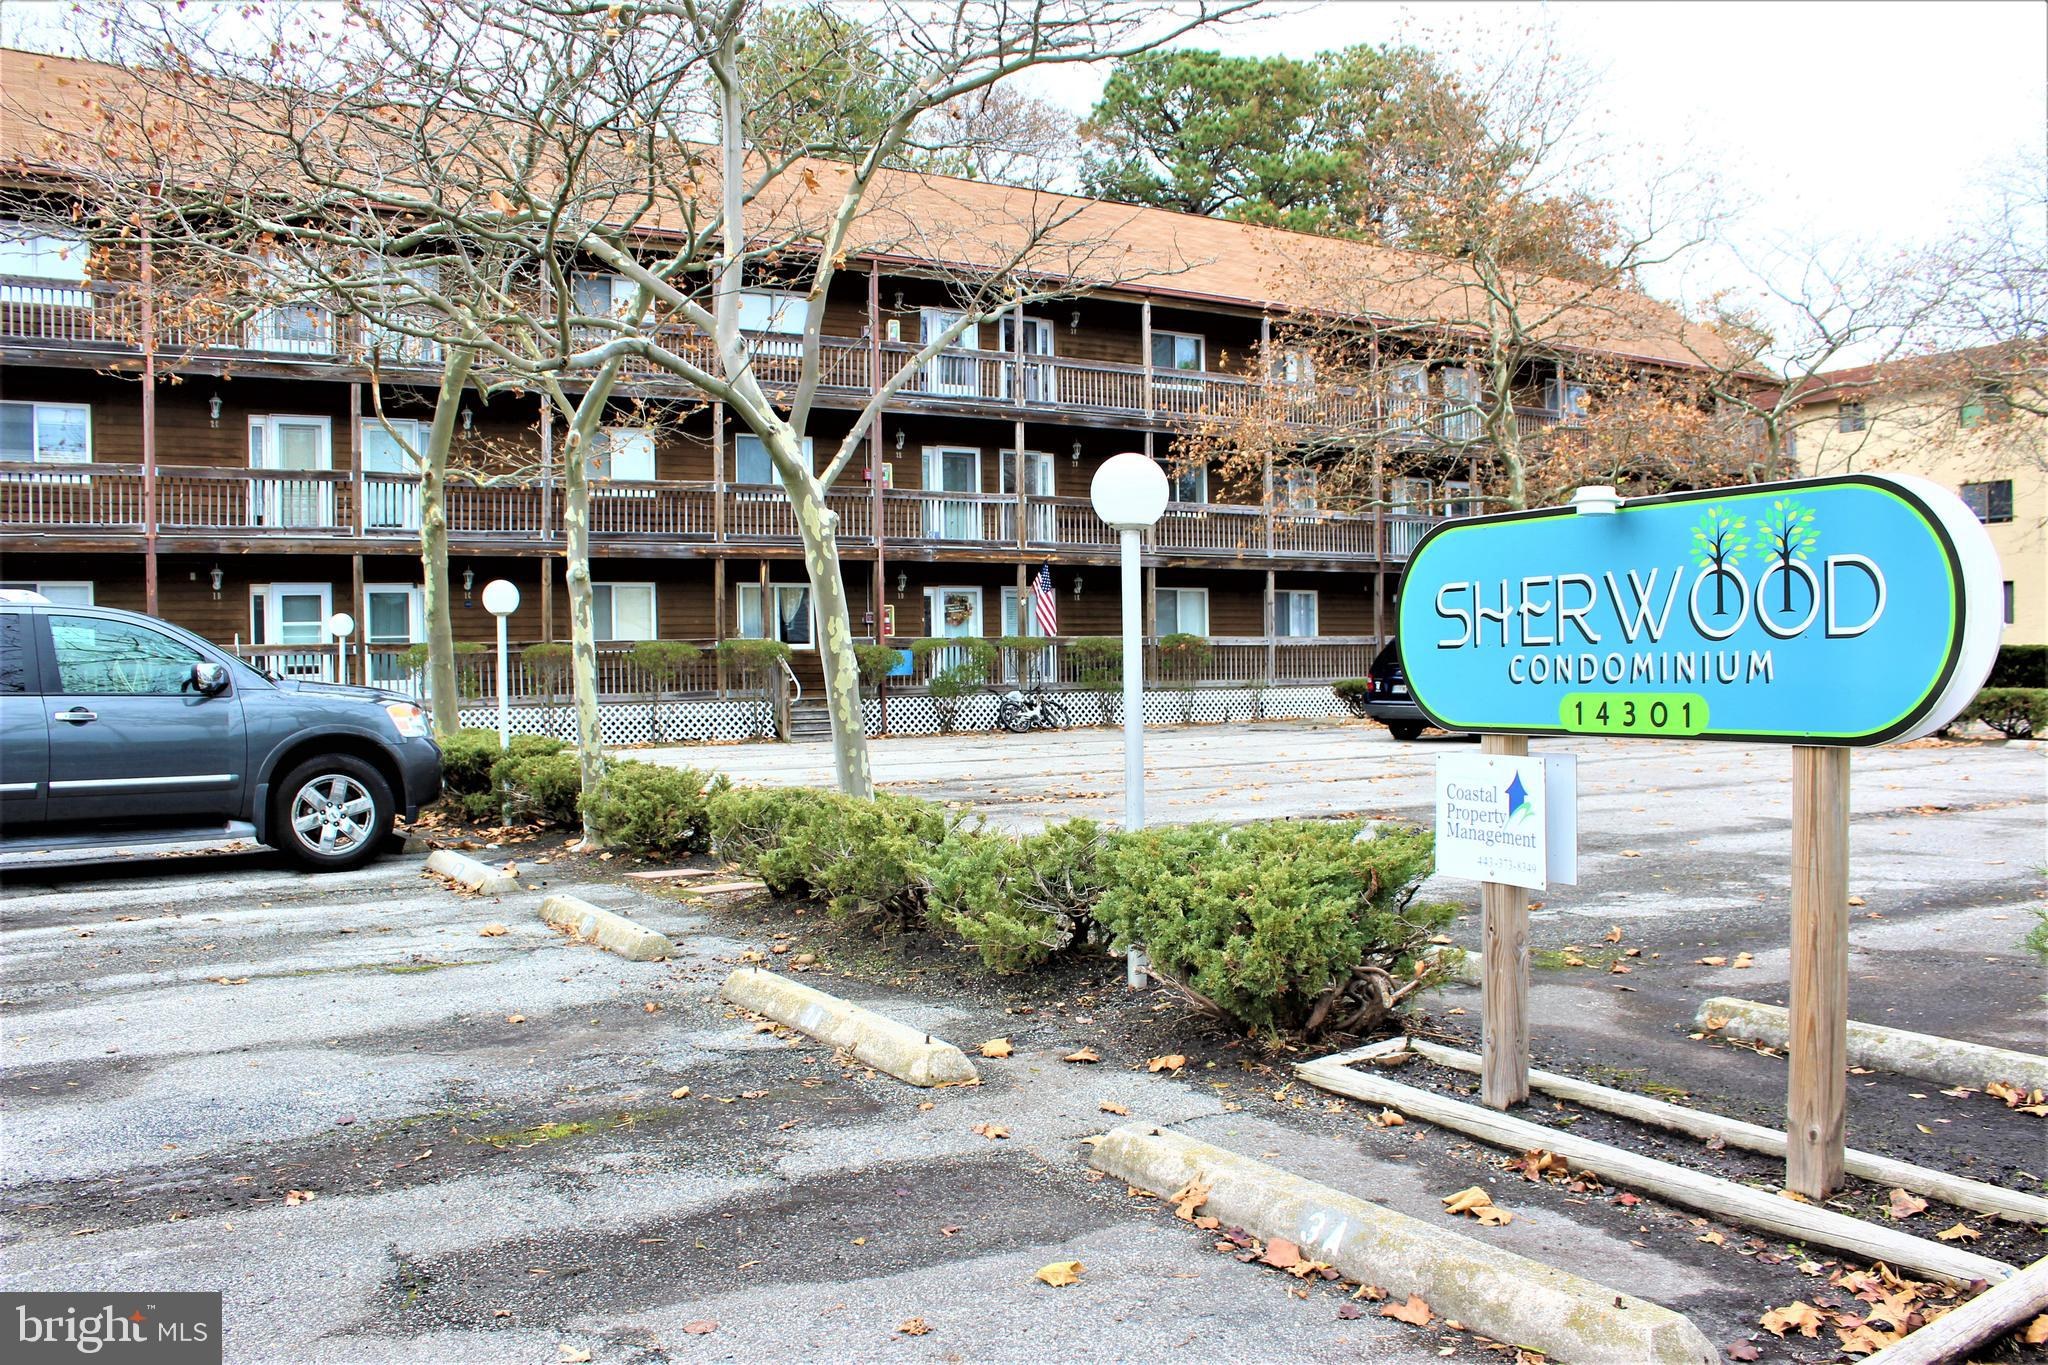 Well maintained 2nd fl. condo in North Ocean City. Located in the Caine Woods sub-division, close to tax free De., Movie Theater, Shopping & Restaurants. Condo features upgraded vinyl plank flooring, updated BA's, split BR plan, breakfast bar, rear balcony & 2 assigned parking spaces. Make this your next stop in Ocean City.